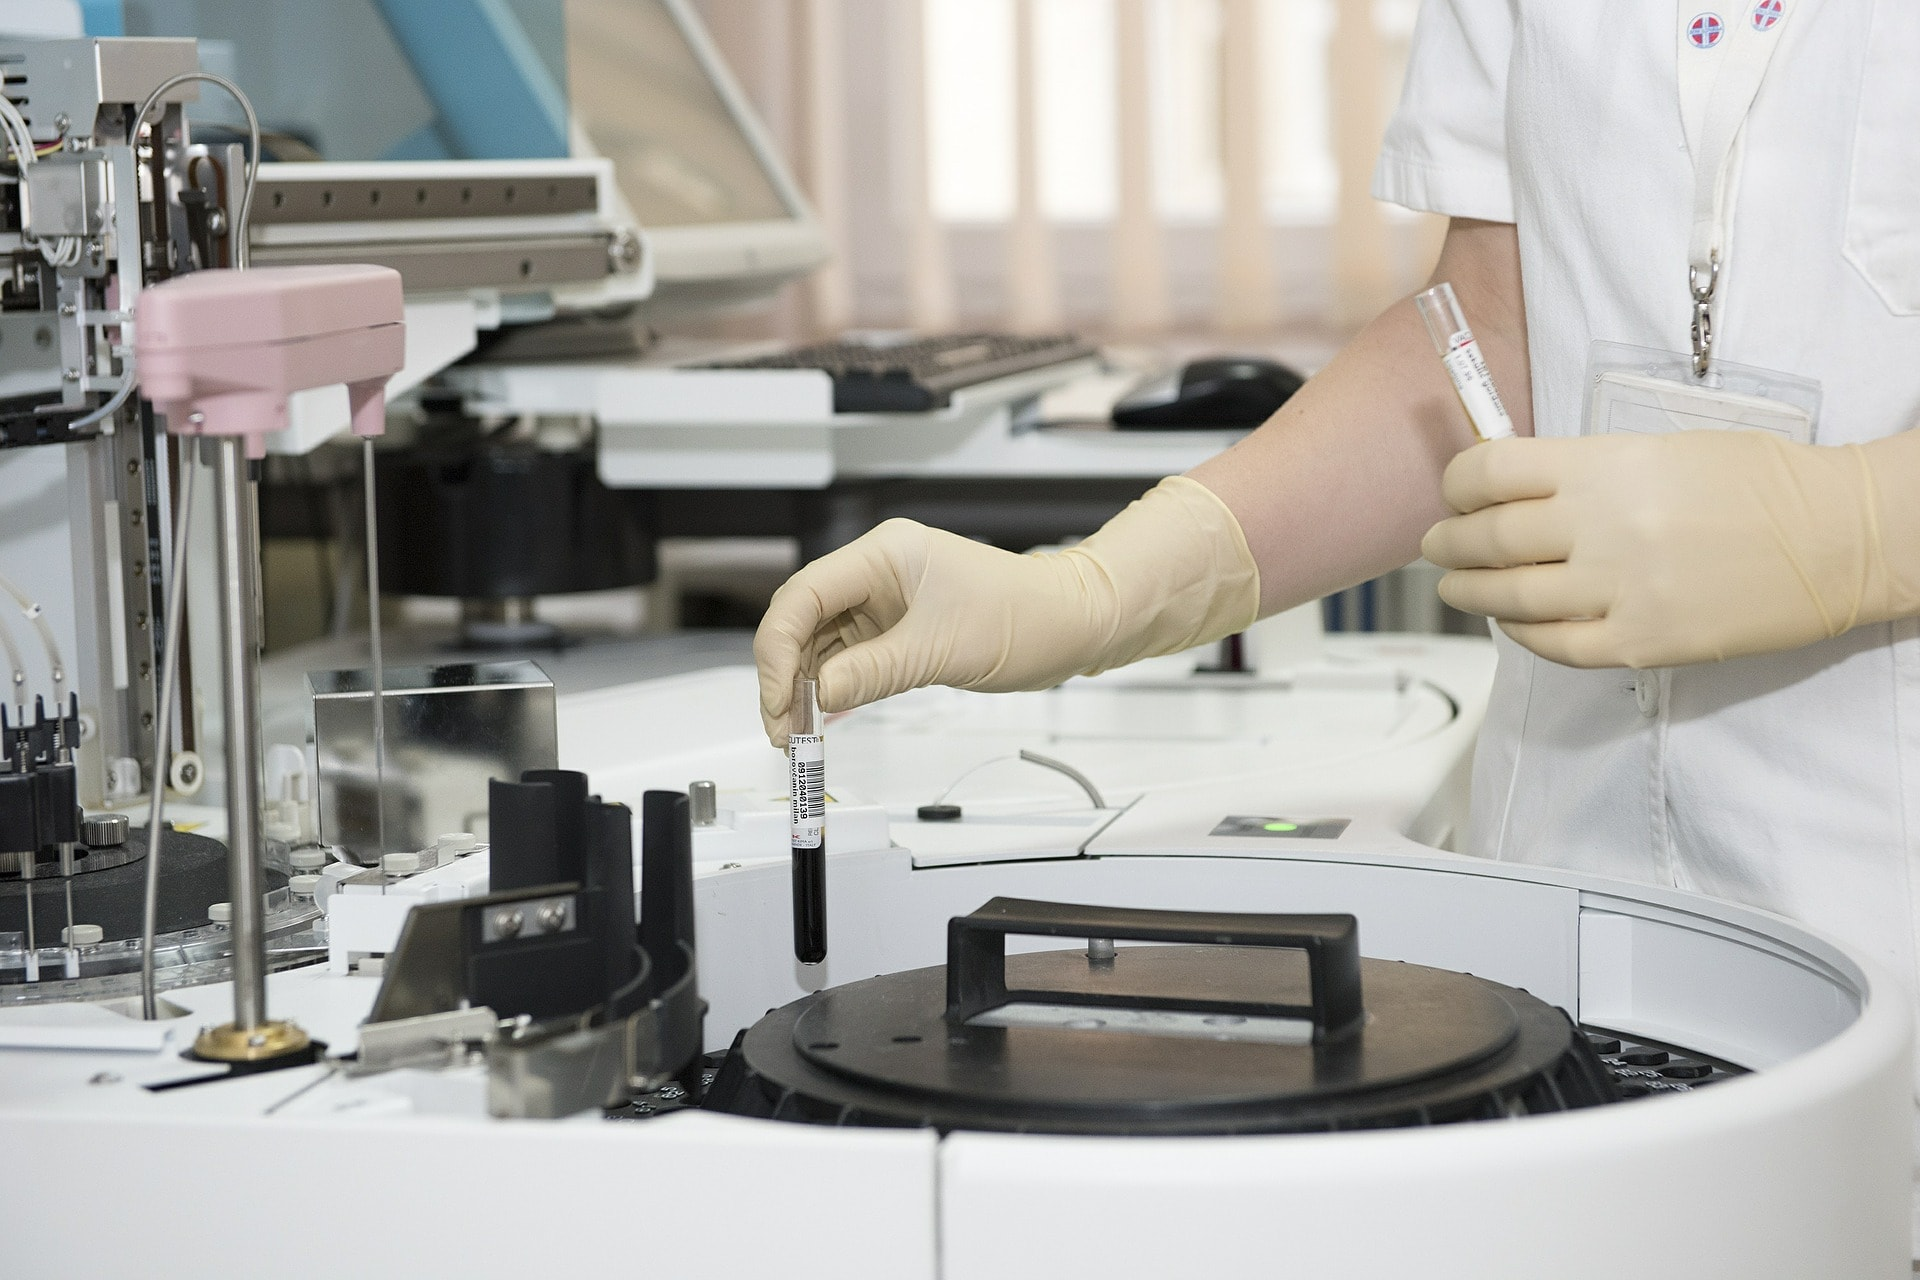 Top 10 Best IVF Centres in Ludhiana Test-Tube Baby Cost - Hospital